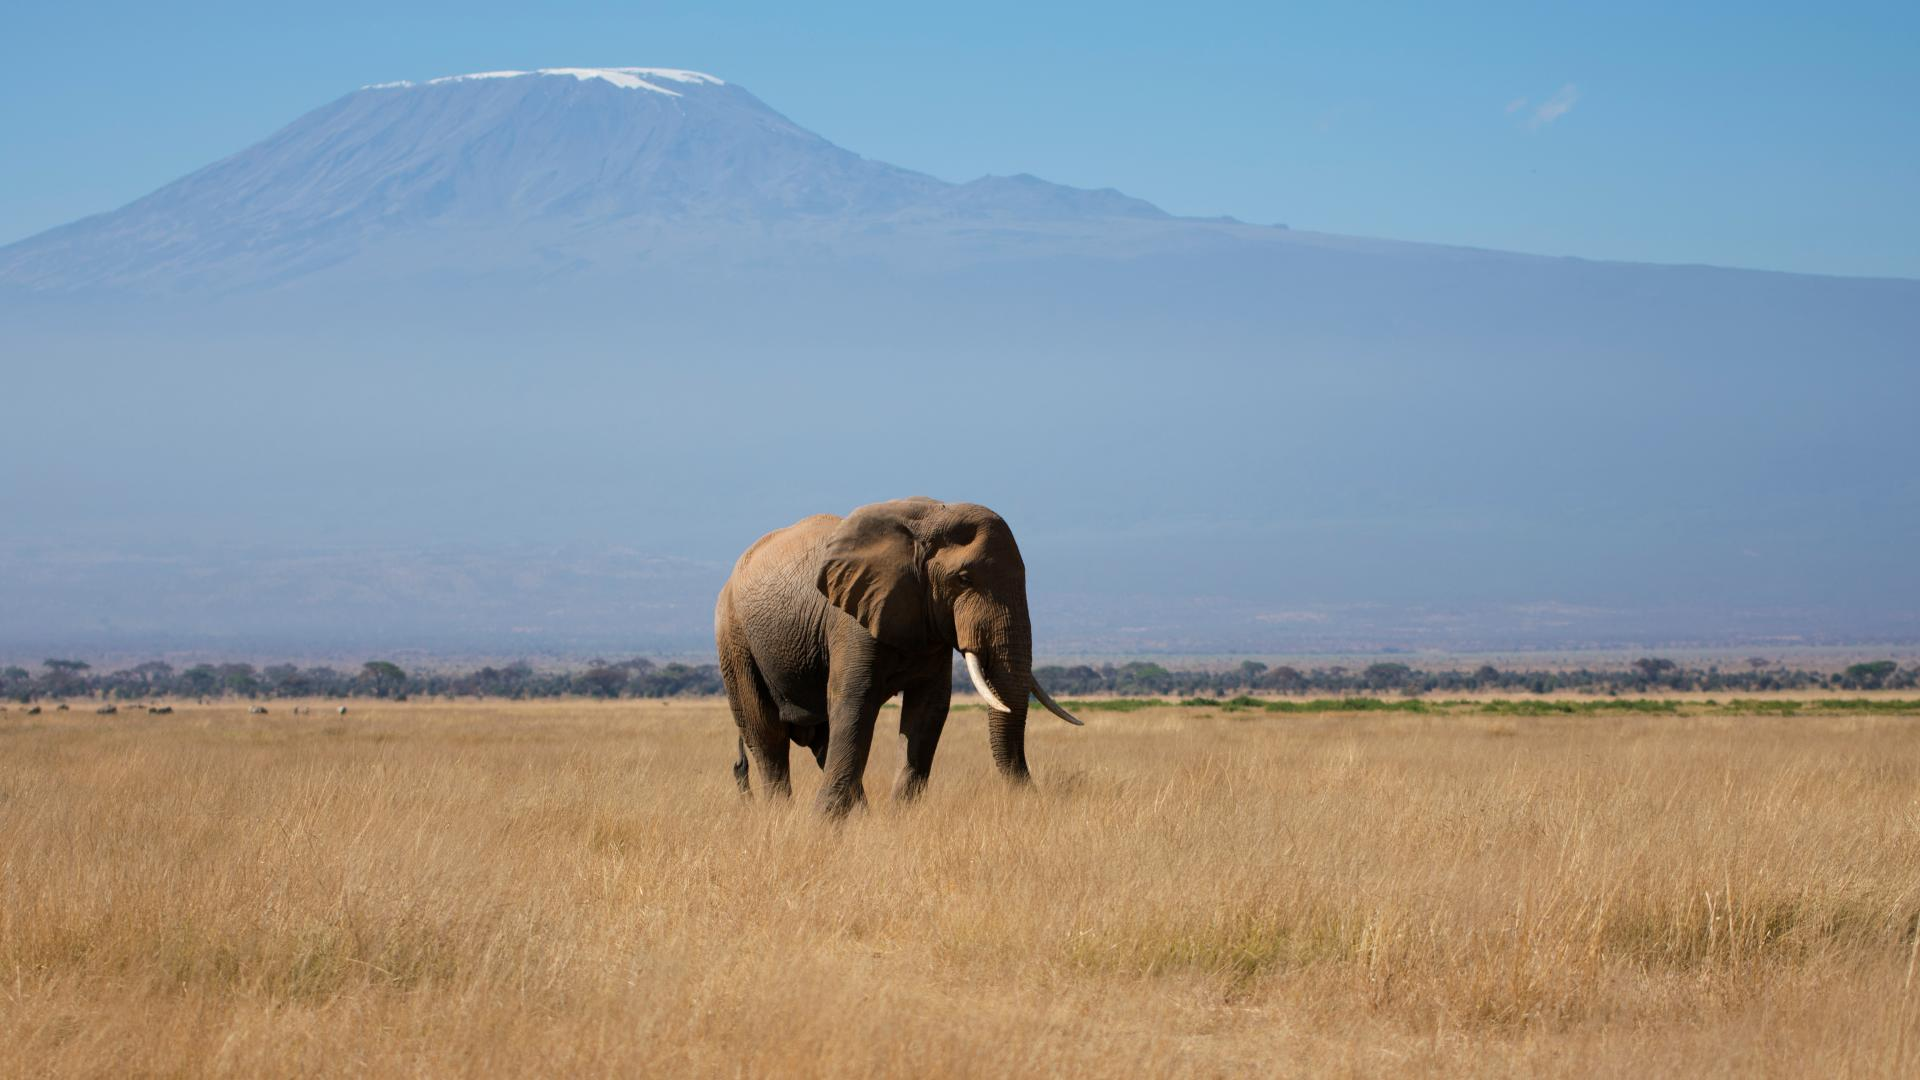 Wild elephant in a field in Africa